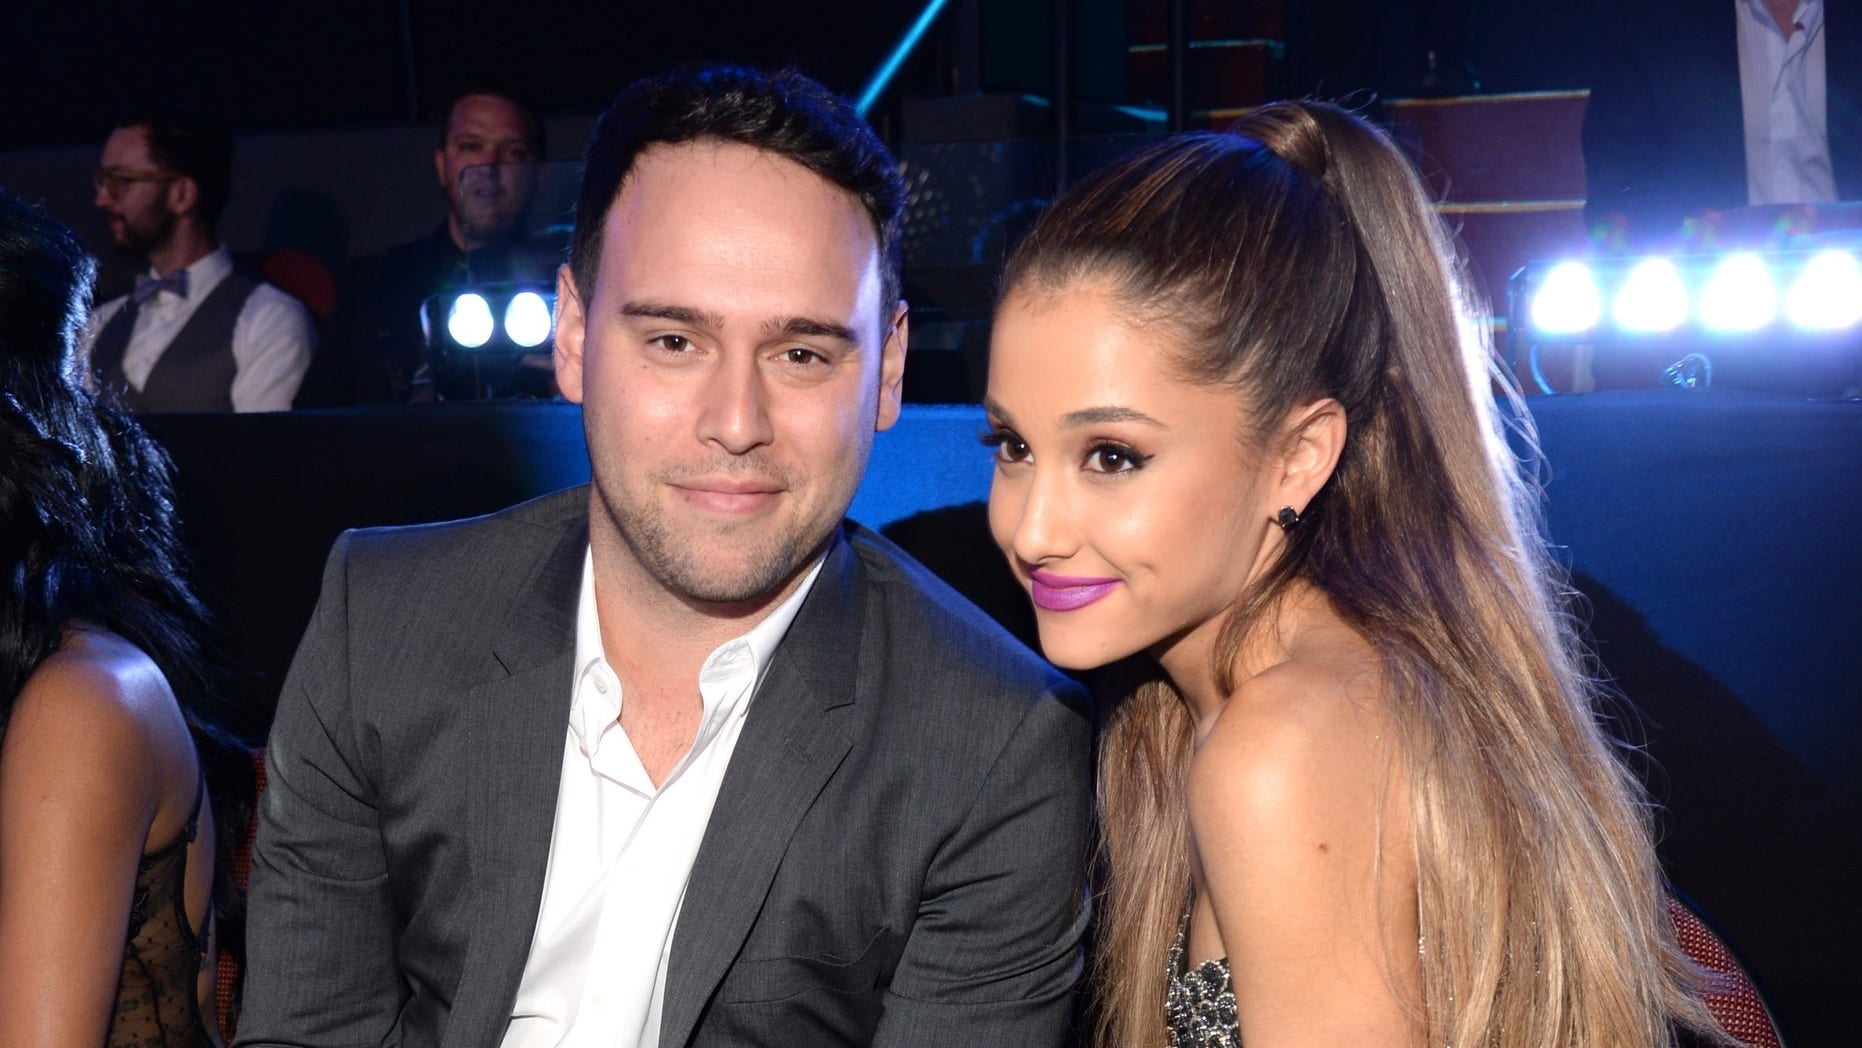 Scooter Braun Hints That Ariana Grande Fired Him Over a 'S***ty Boyfriend'